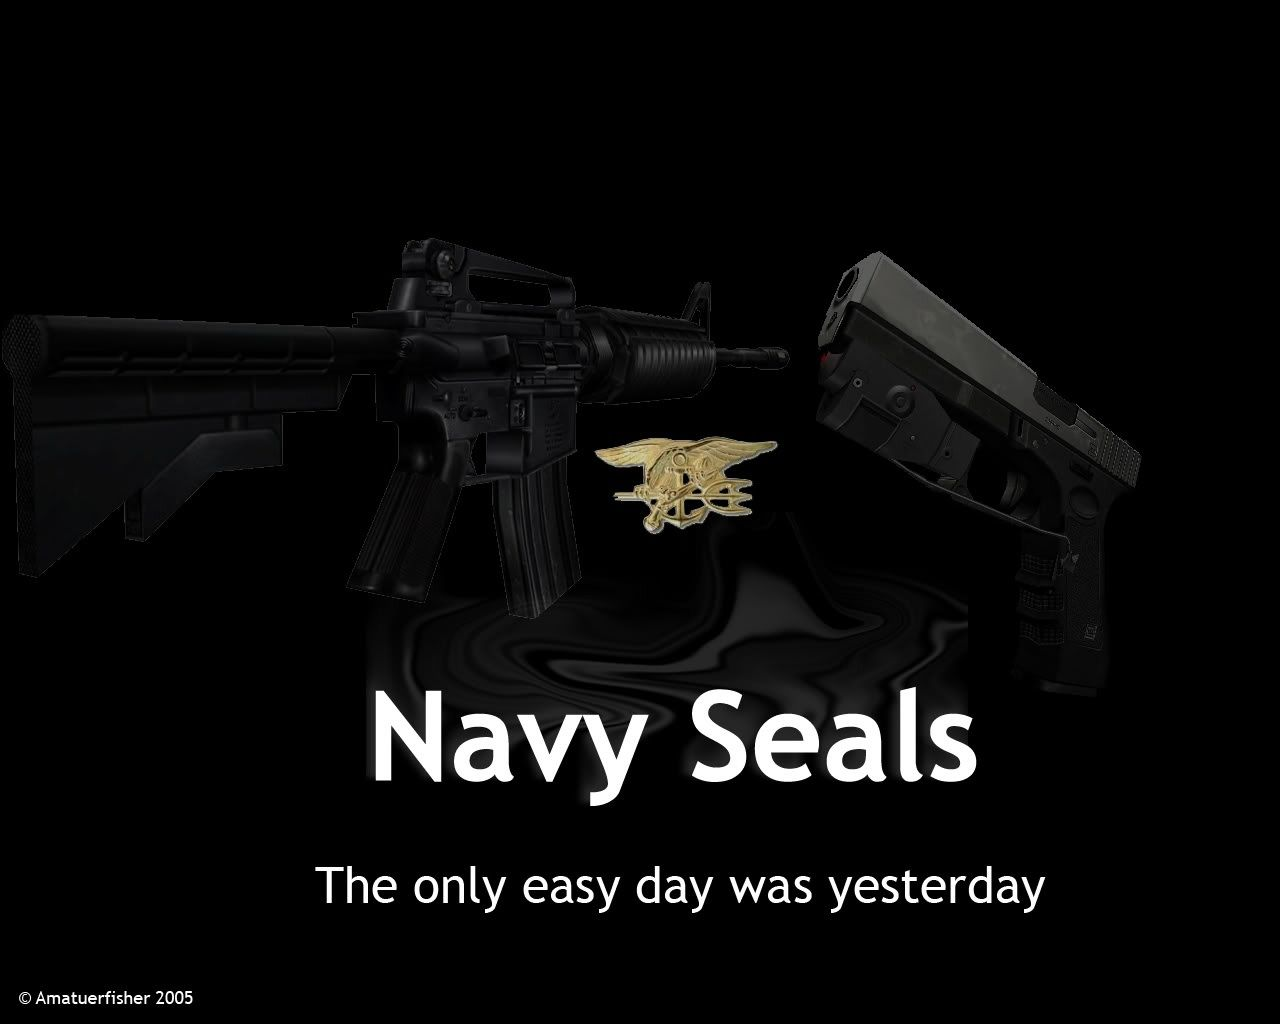 Navy Seal Hd Wallpapers Backgrounds Wallpaper Navy Seal Wallpaper Navy Seals Us Navy Seals